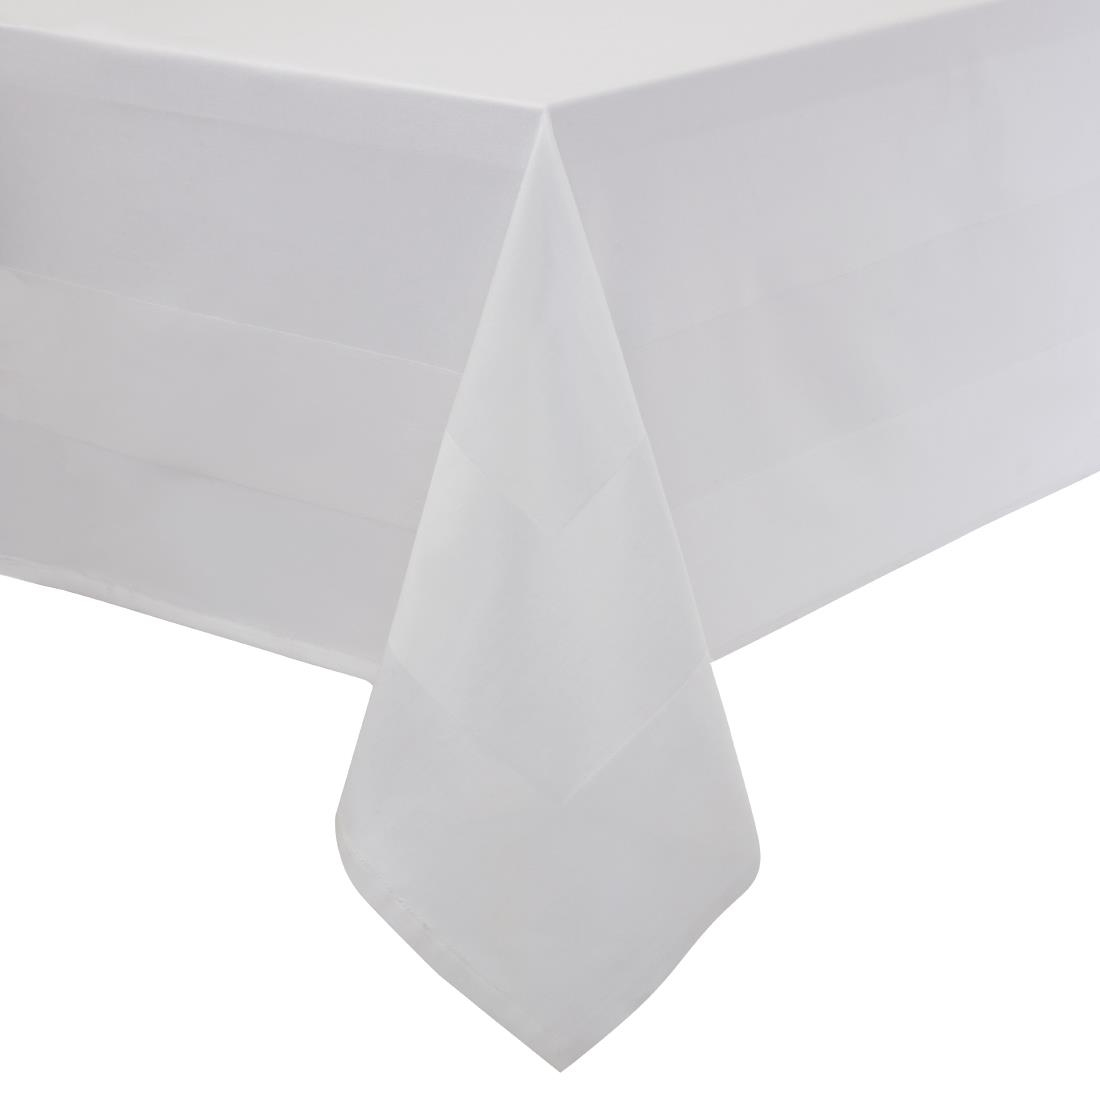 Image of Mitre Luxury Satin Band Tablecloth 1370 x 1370mm